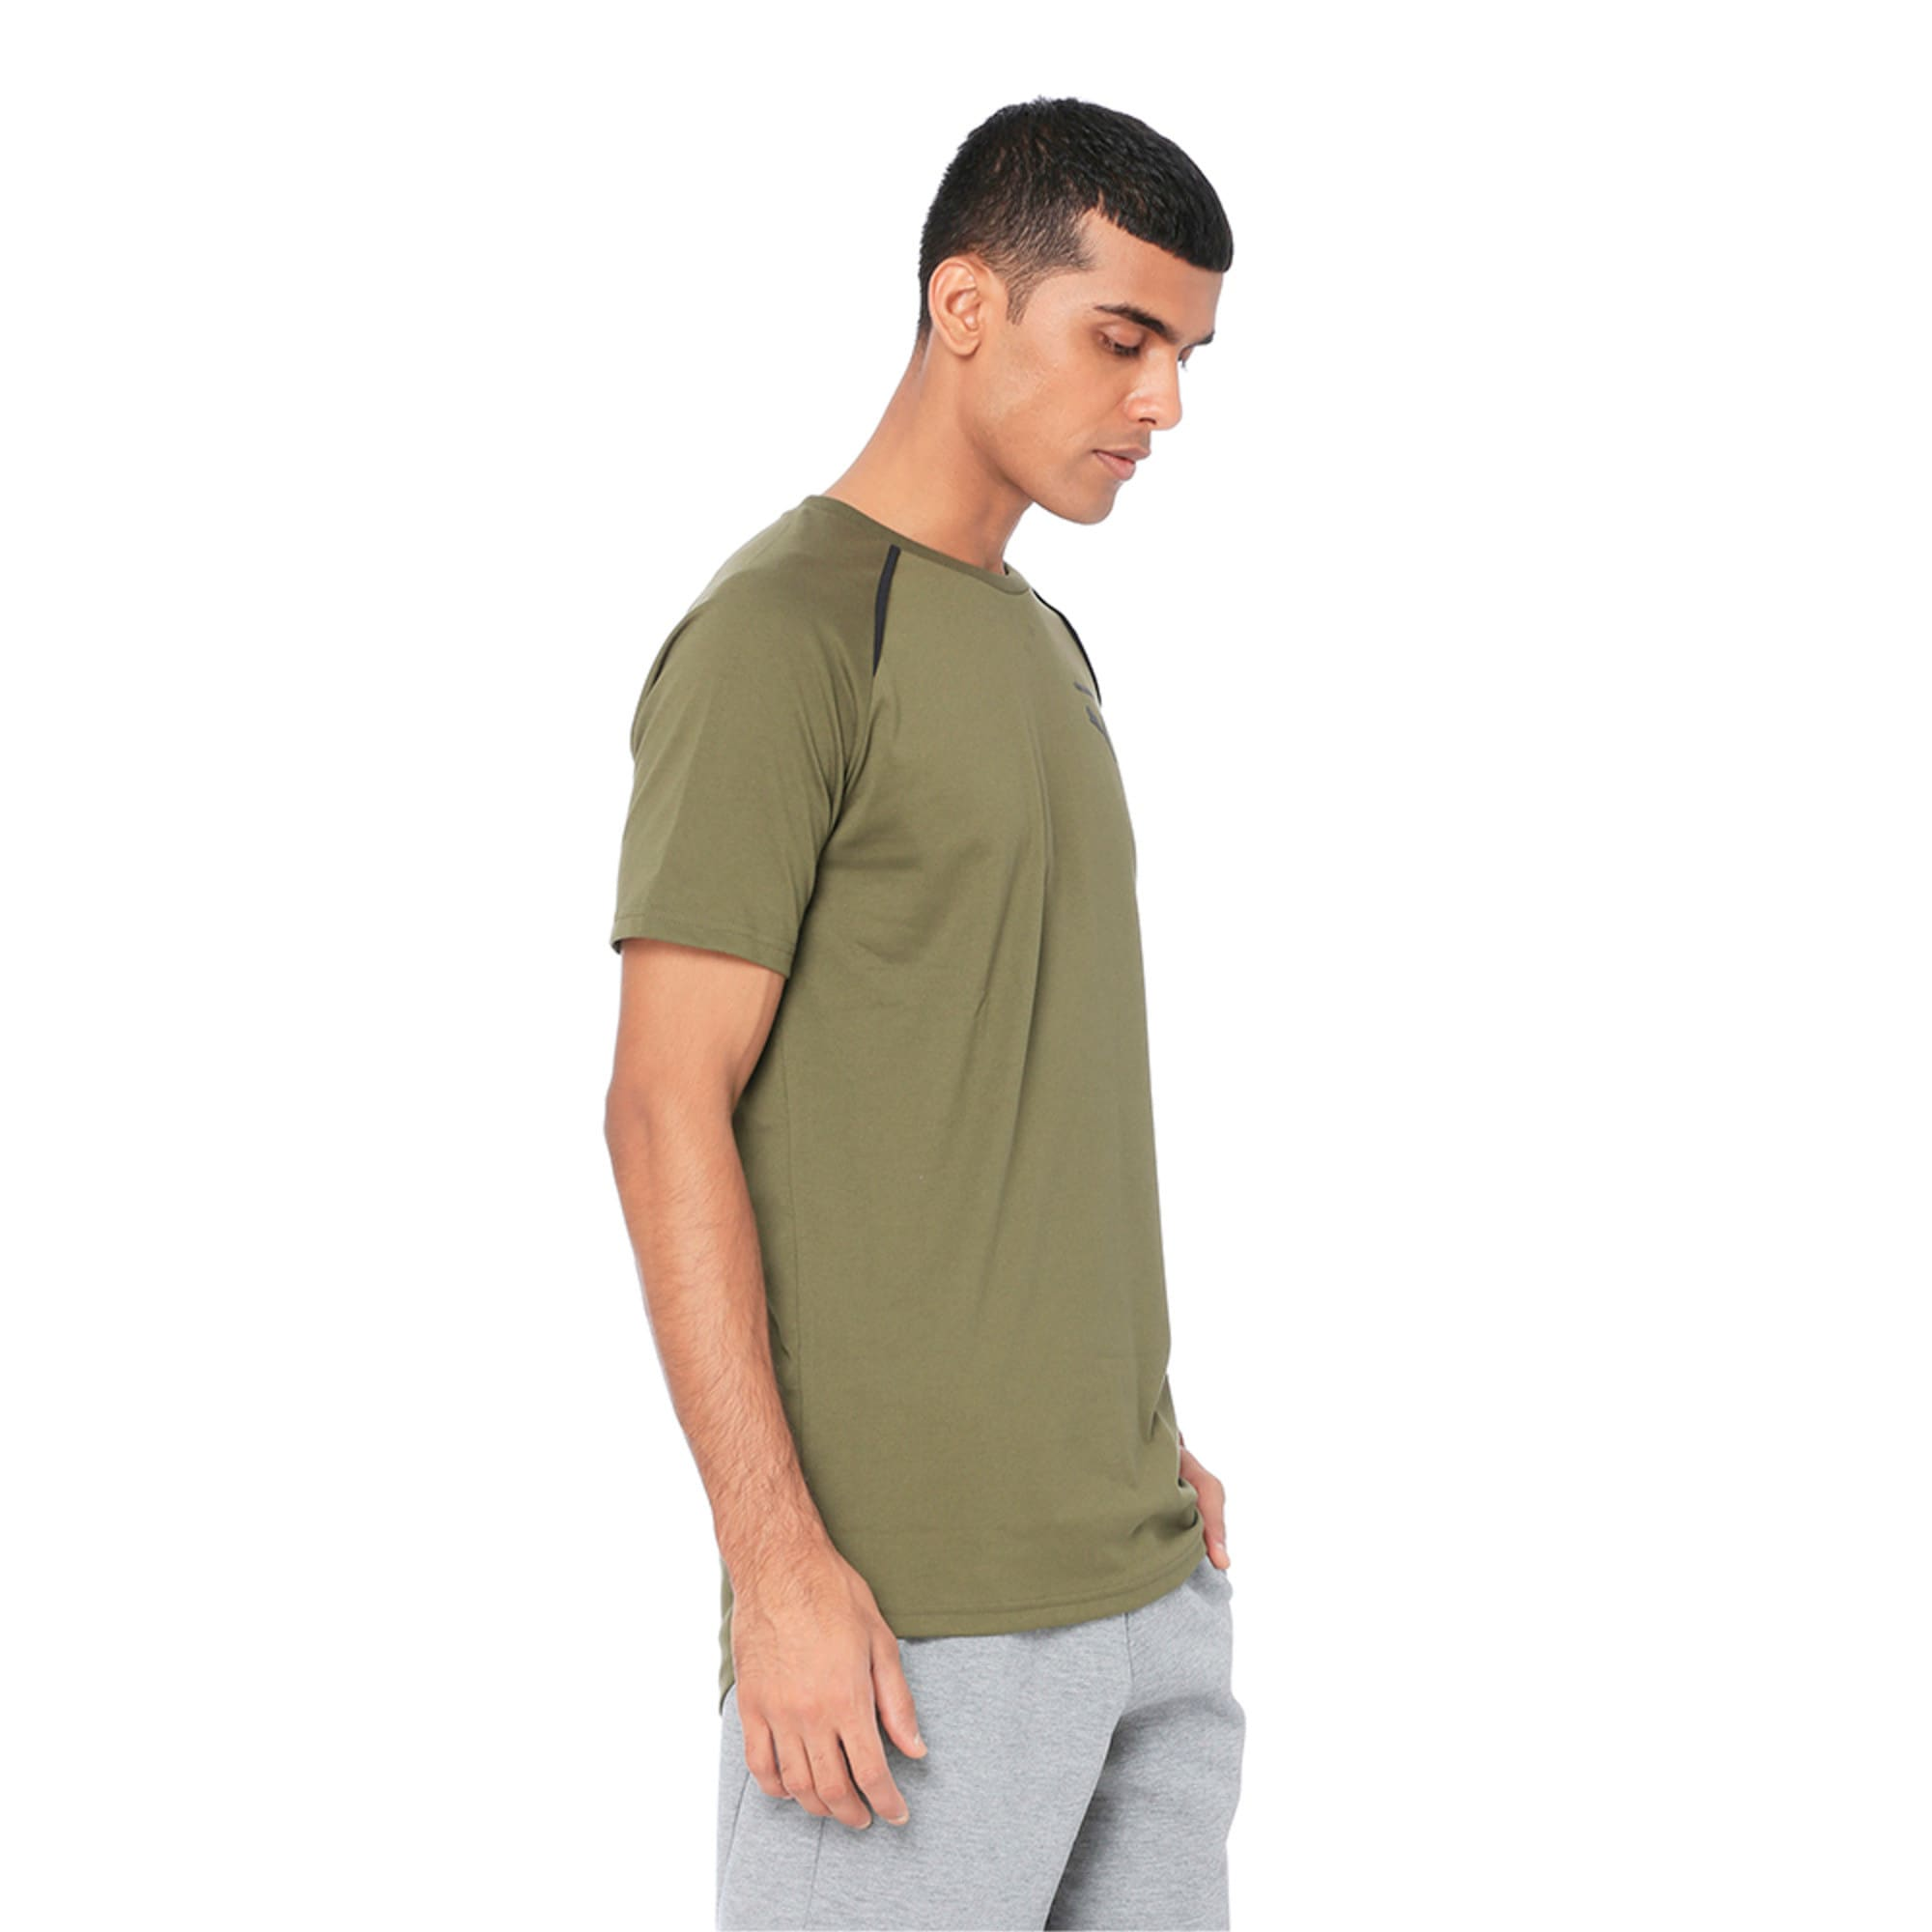 Thumbnail 2 of Evolution Men's Core T-Shirt, Olive Night, medium-IND